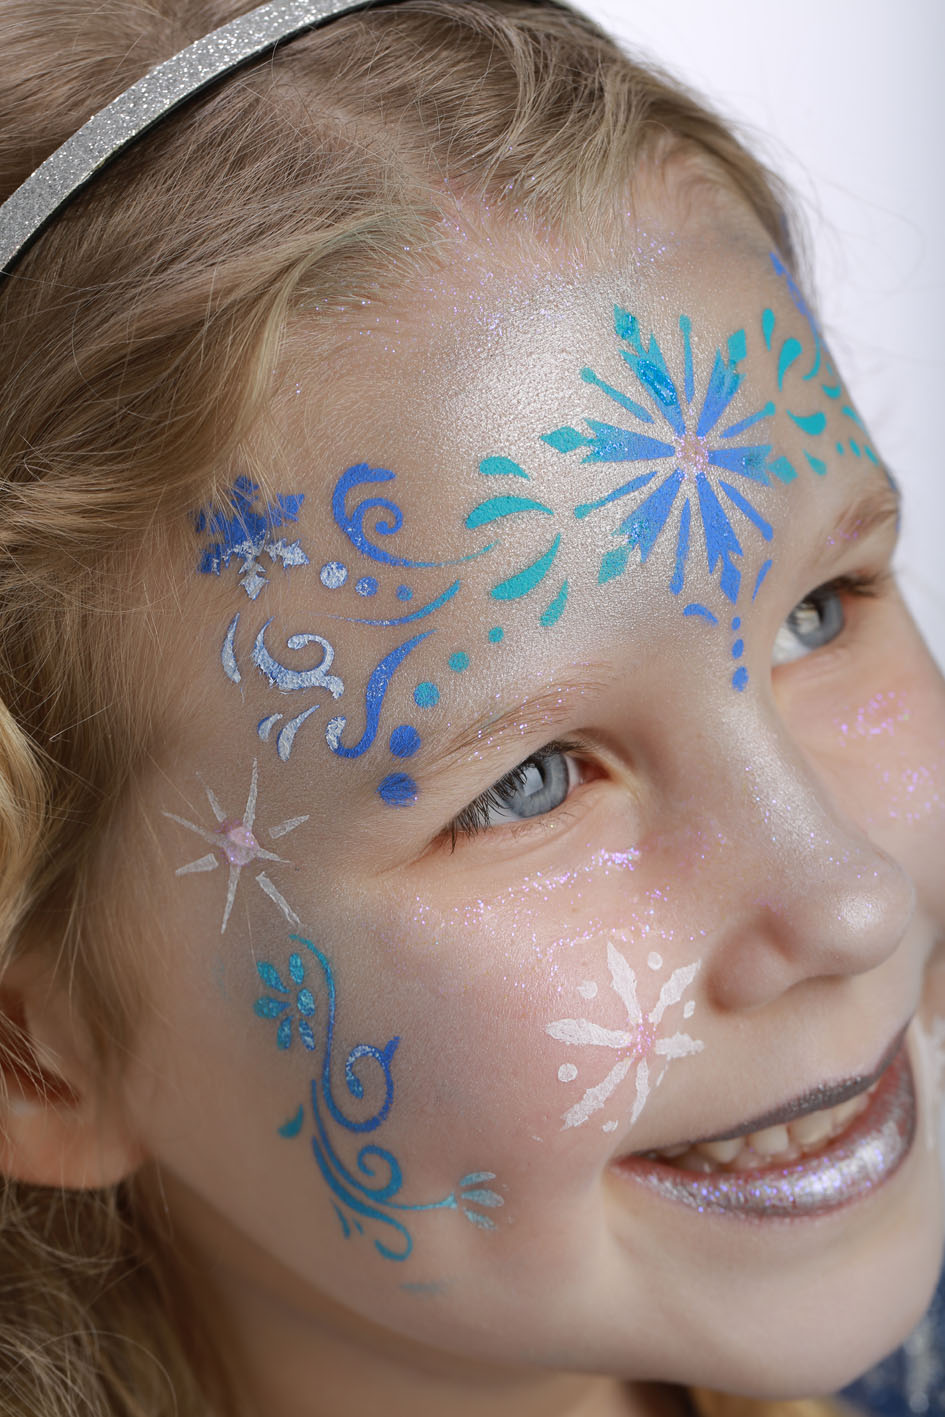 Pochoir de maquillage r utilisable princesse des neiges - Modele maquillage princesse ...